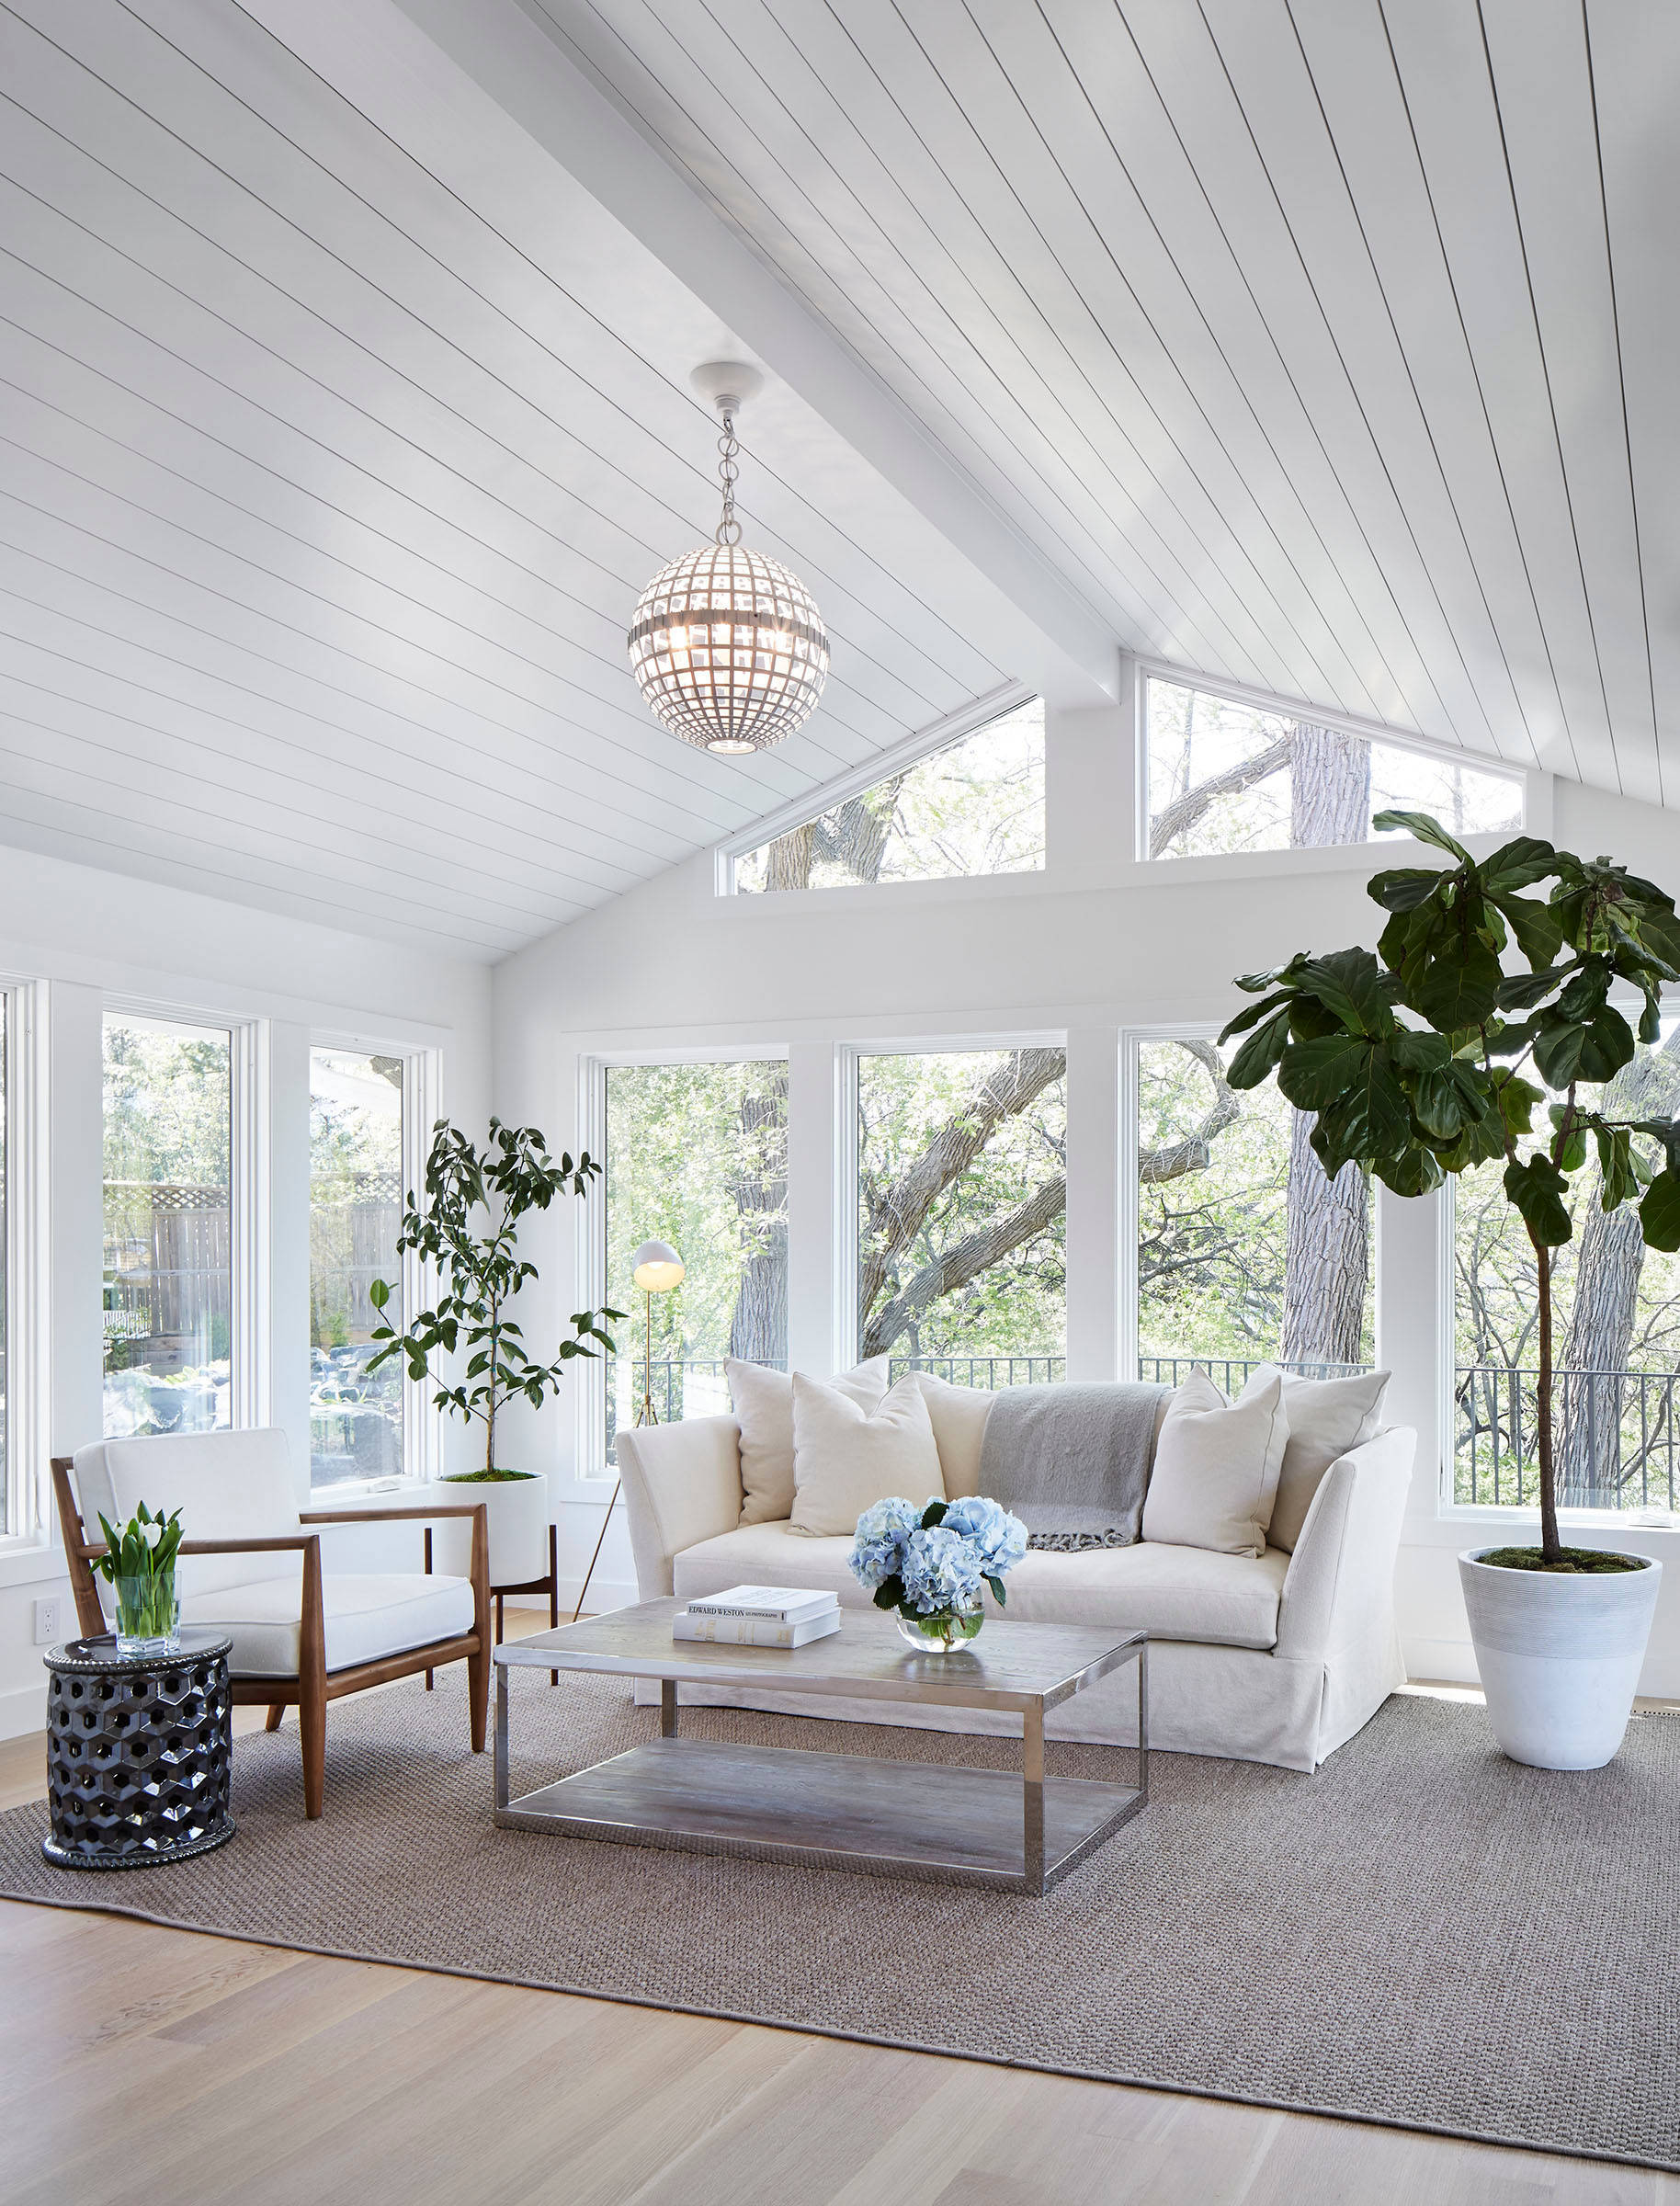 28 Beautiful Sunroom Pictures & Ideas - September, 28  Houzz